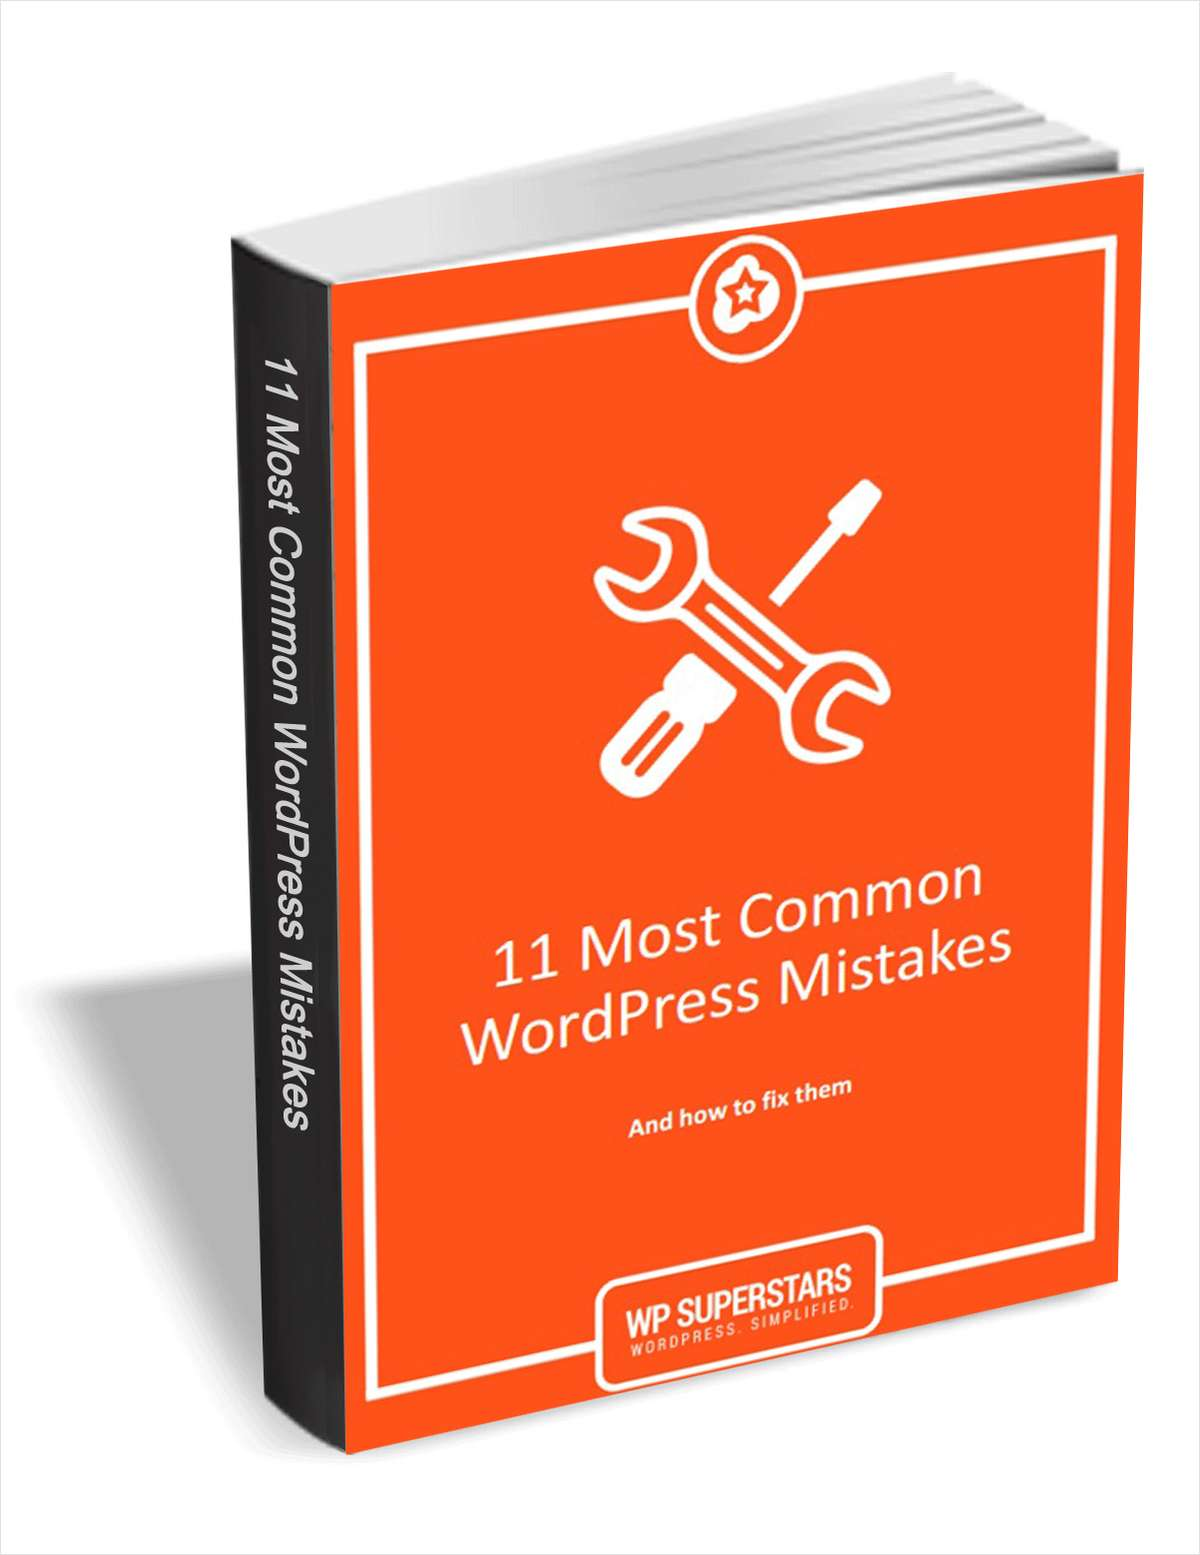 11 Most Common WordPress Mistakes And How To Fix Them